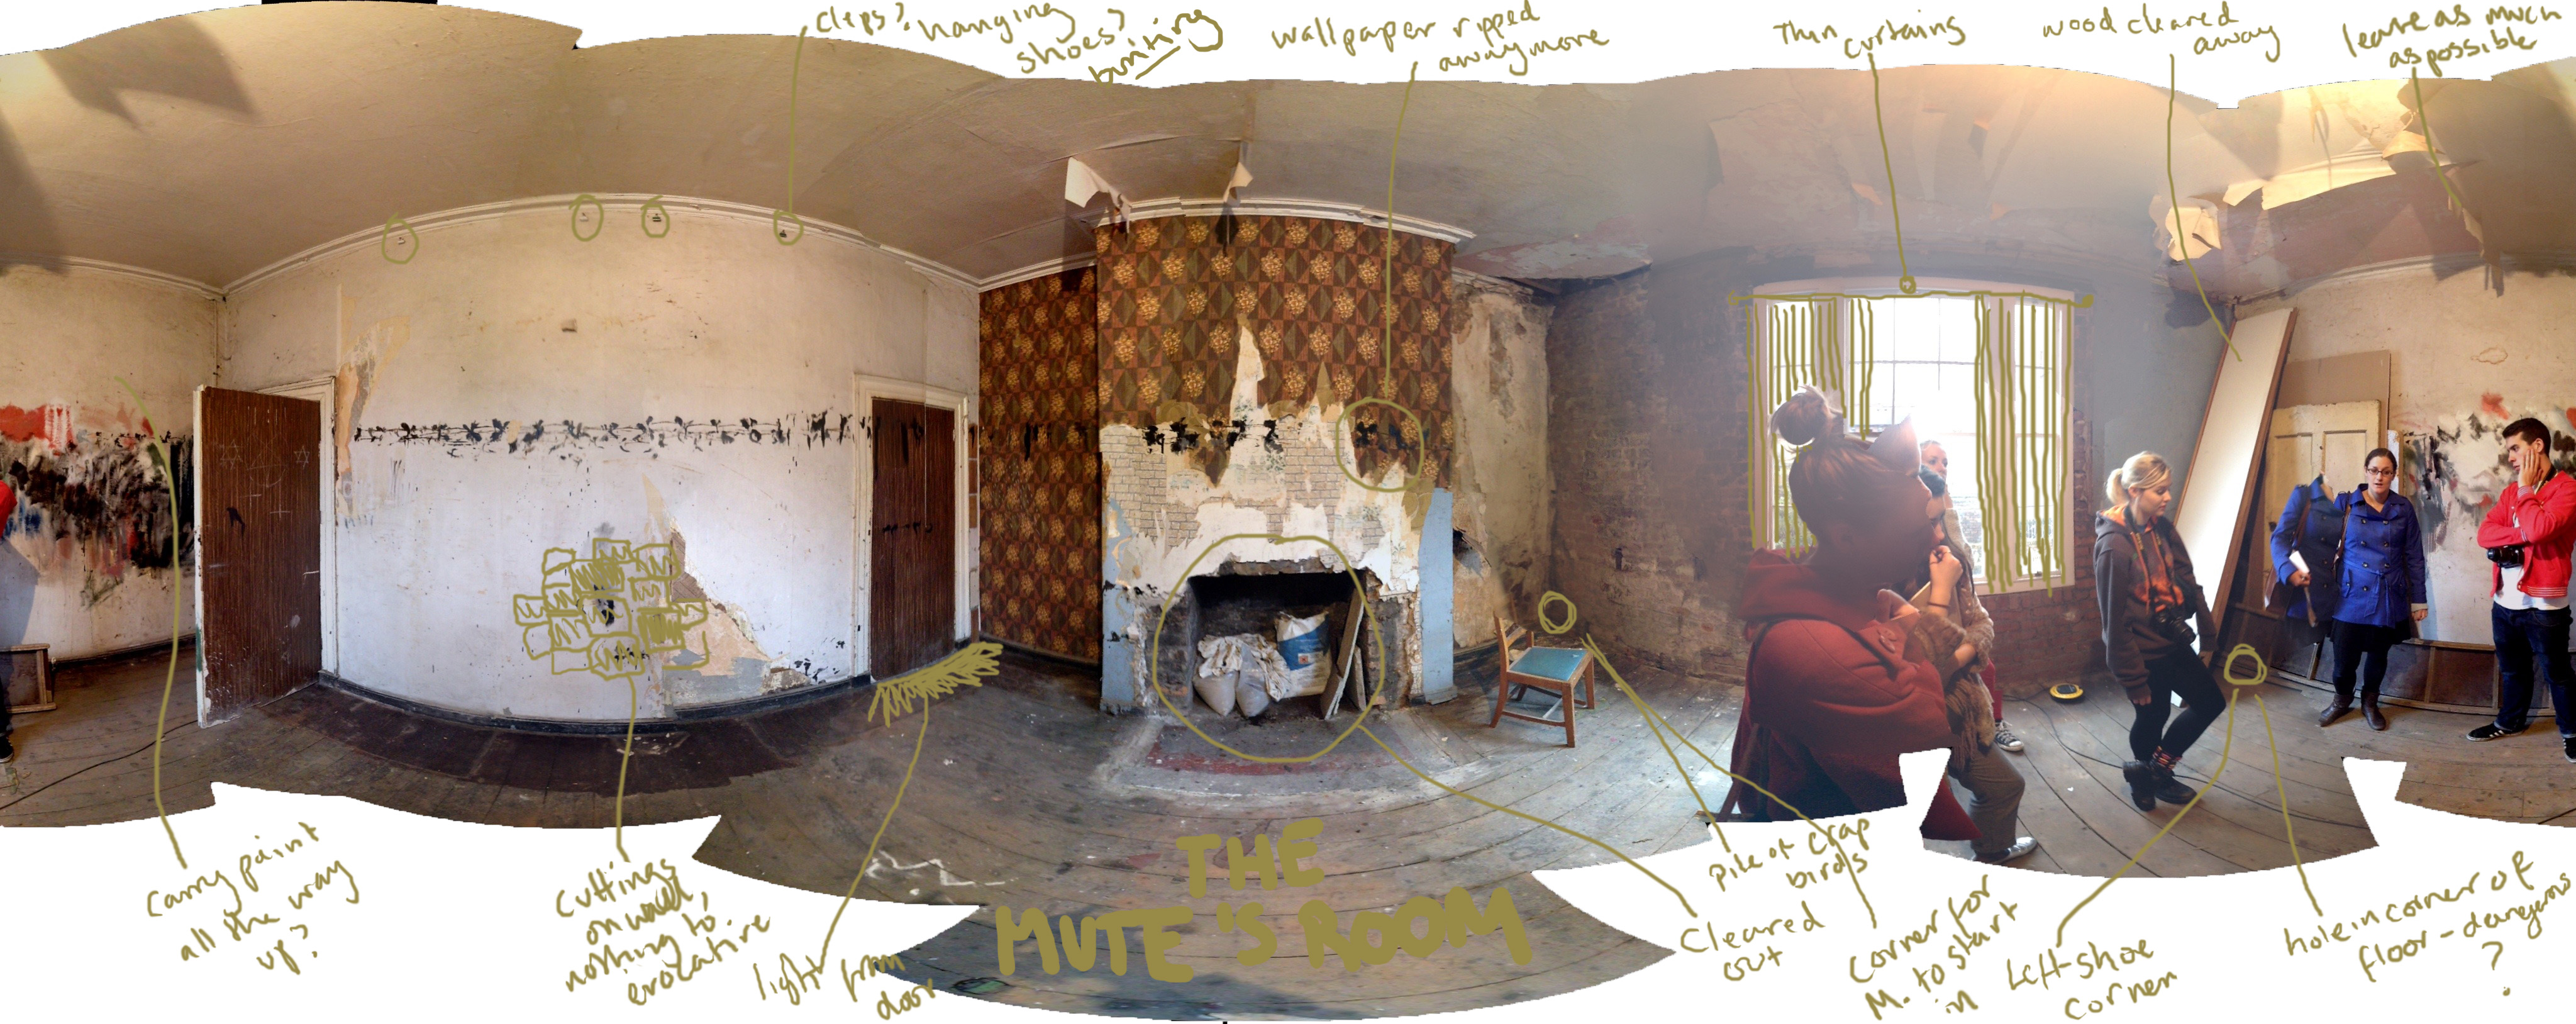 annotated drawing - mutes room.jpg